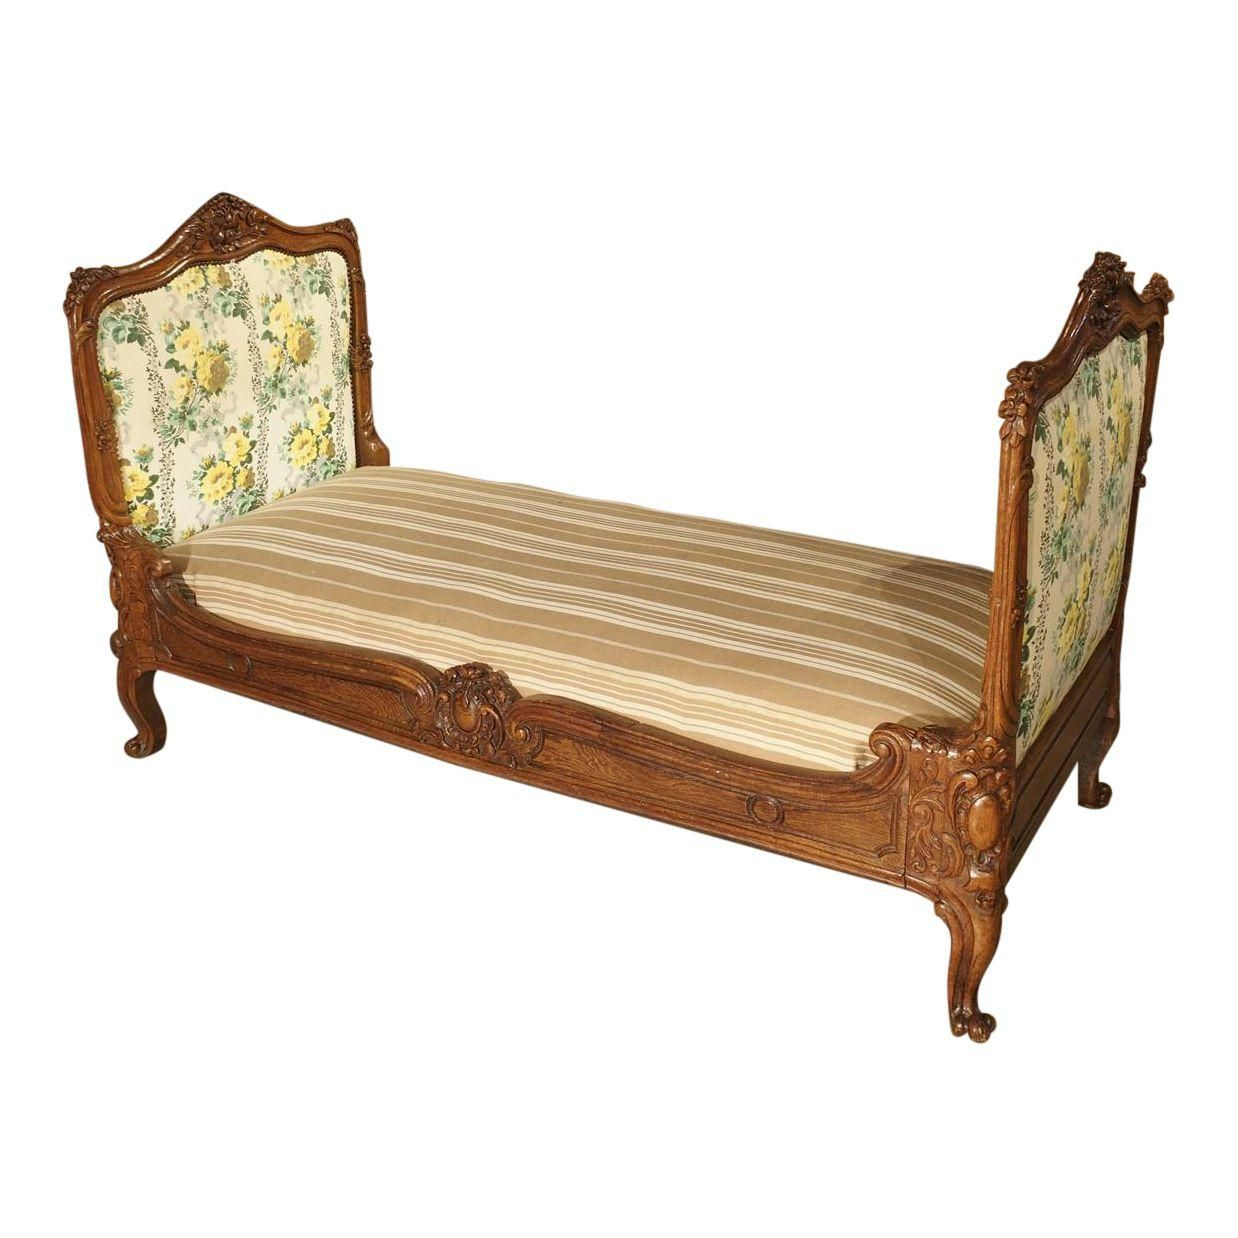 19th Century Carved Oak French Daybed Image 1 Of 11 French Daybed Upholstered Panels Furniture